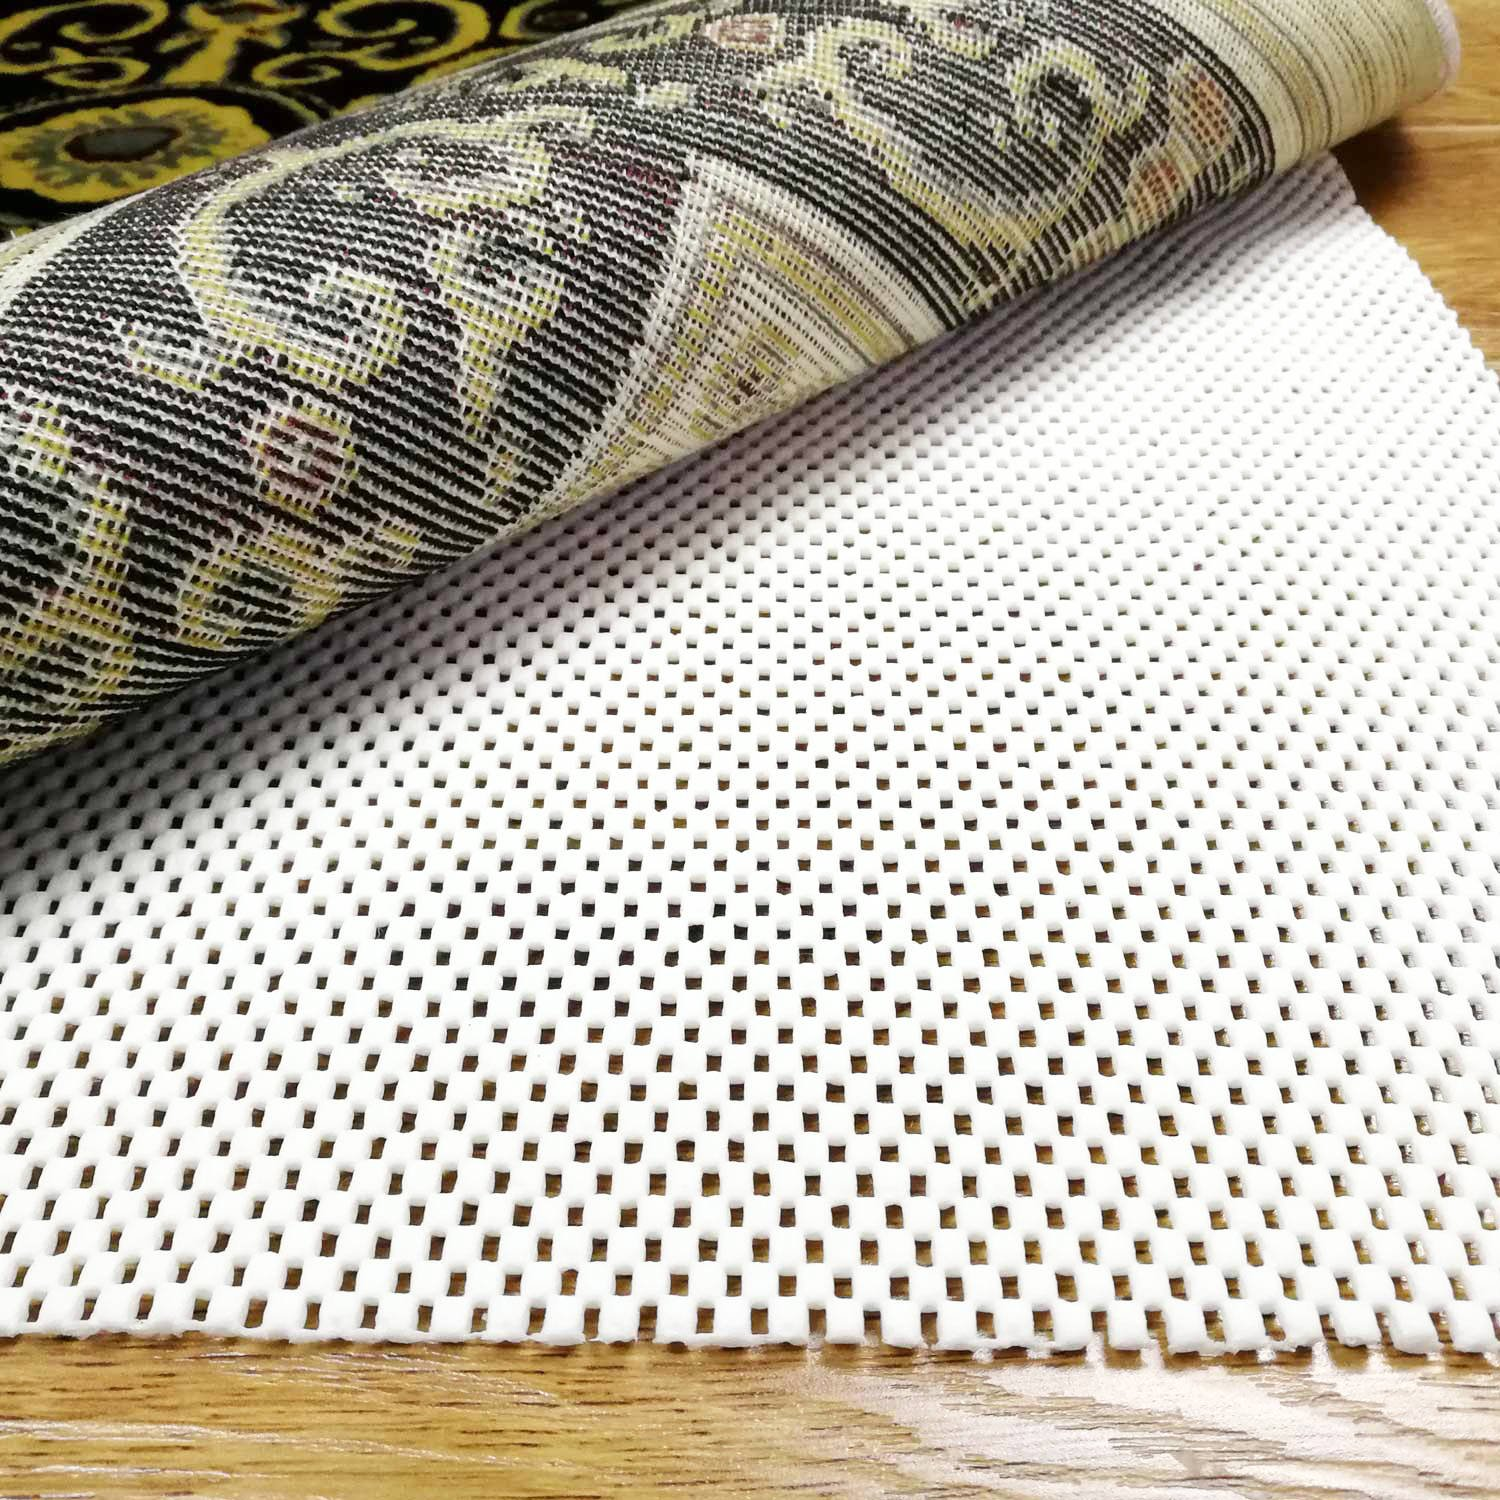 KANECH Rug Pads 5'x7'- Extra Thick- Area Rug Pads Non Slip for Hardwood Floors-Keeps Your Rugs Safe And in Place